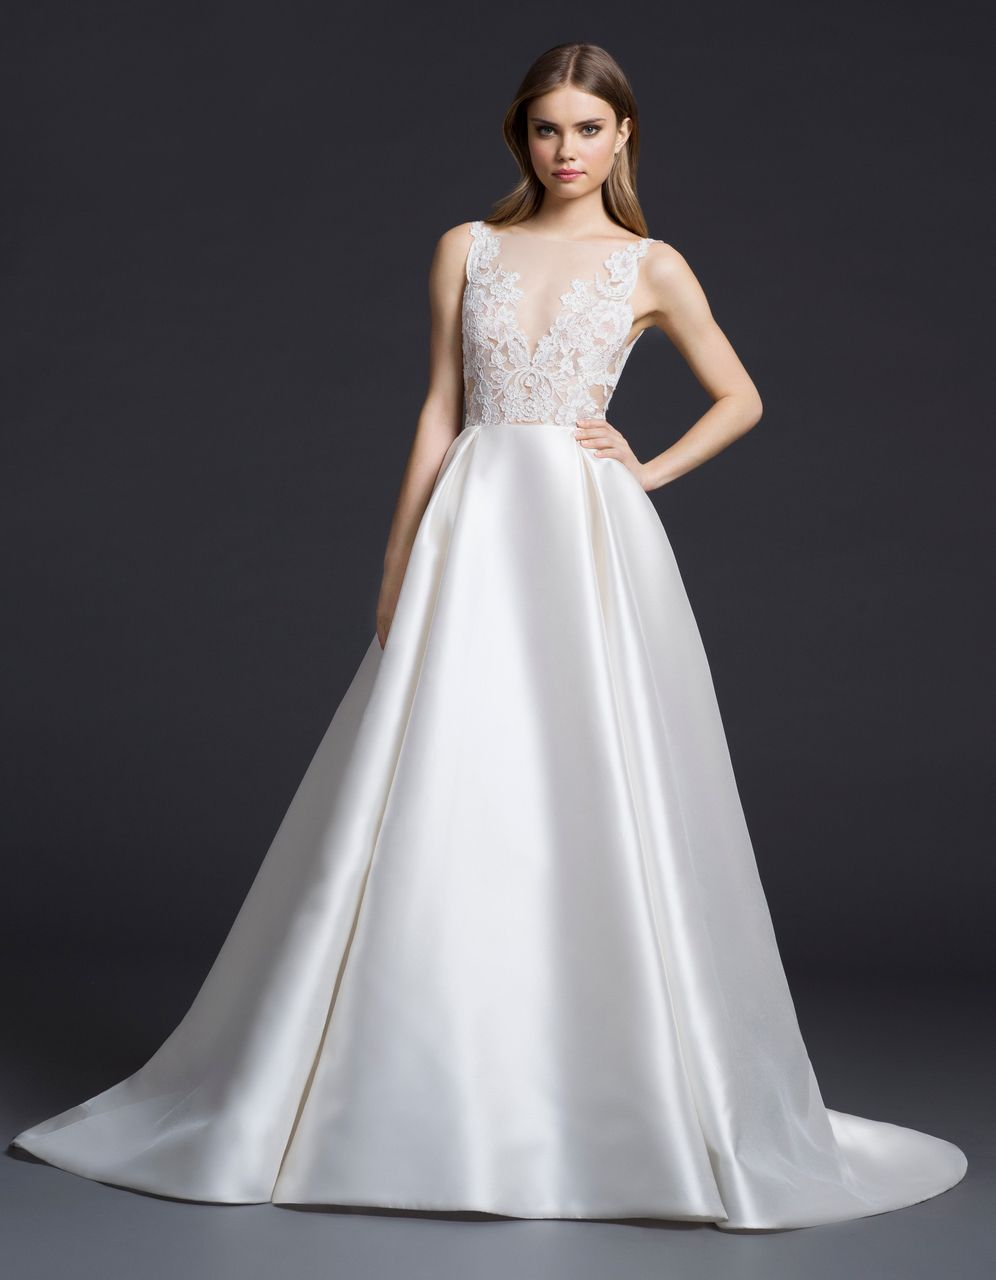 Bridals by Lori - Lazaro 0131350, In store (http://shop ...